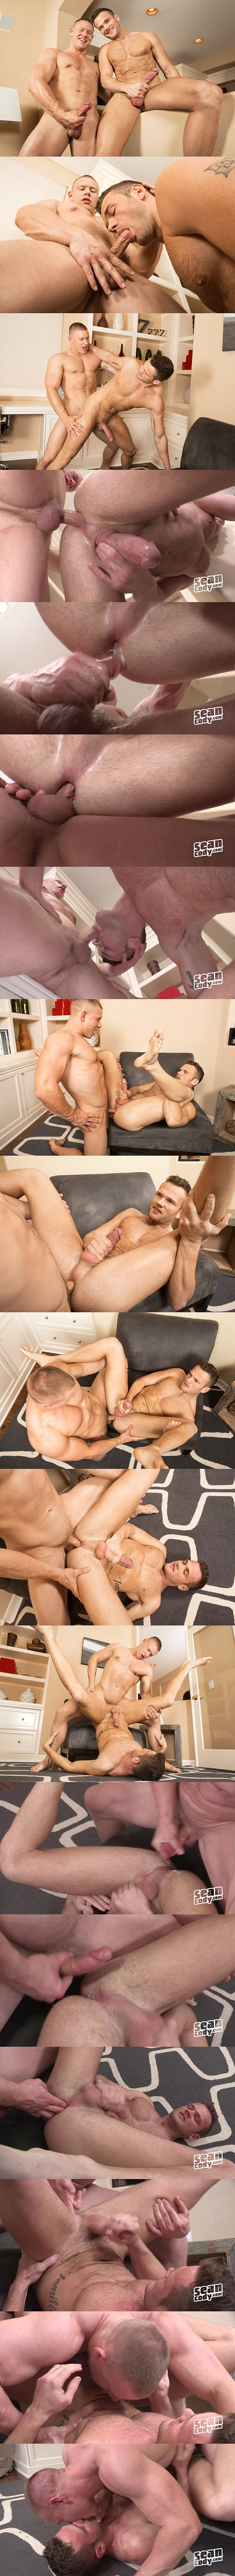 Muscle jock Tate is on top for the first time and barebacks big-dicked Sean at Seancody 02